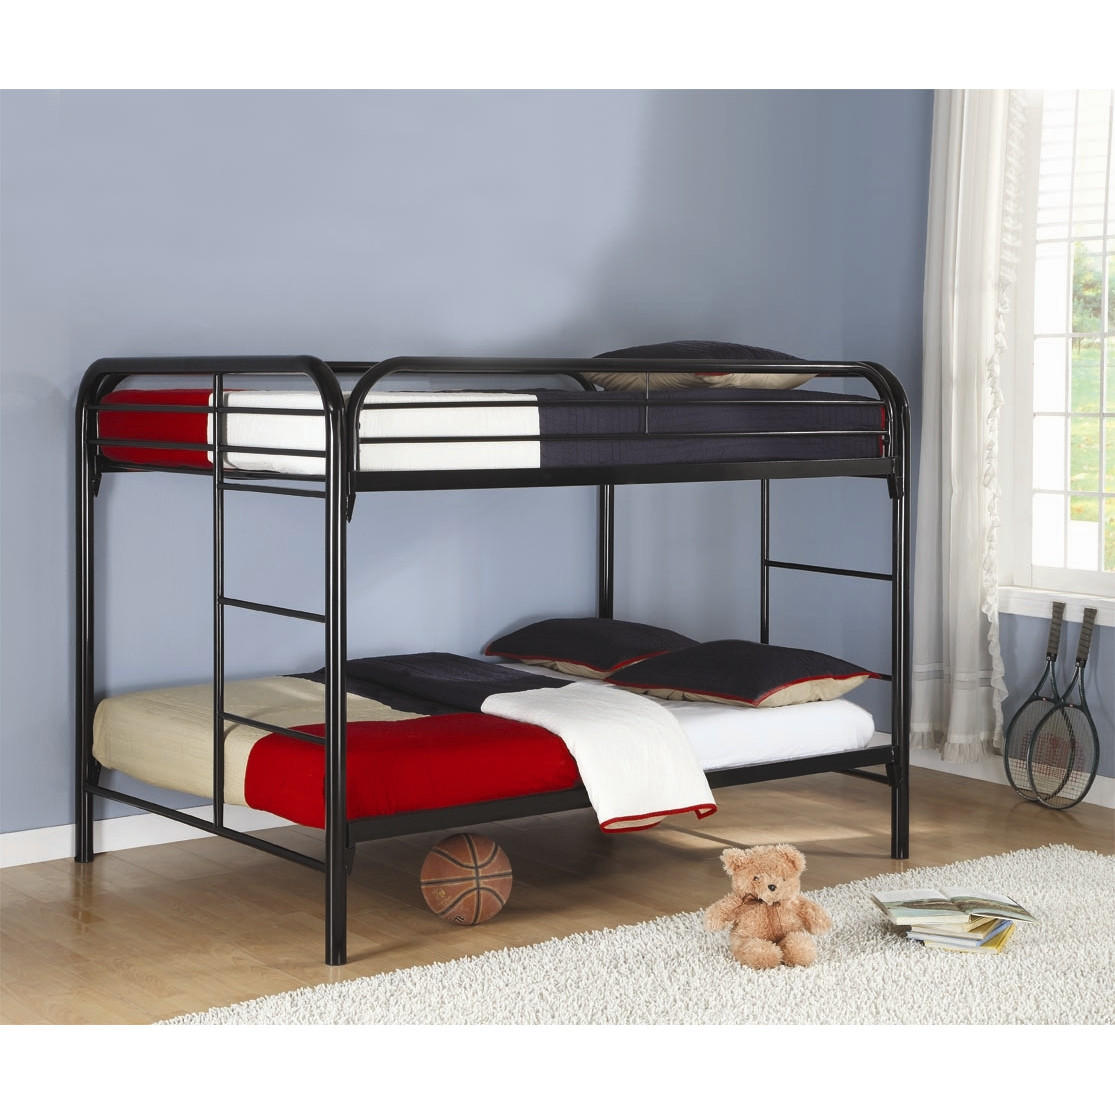 Tweepersoons Stapelbed Sturdy Bunk Beds For Adults Homesfeed